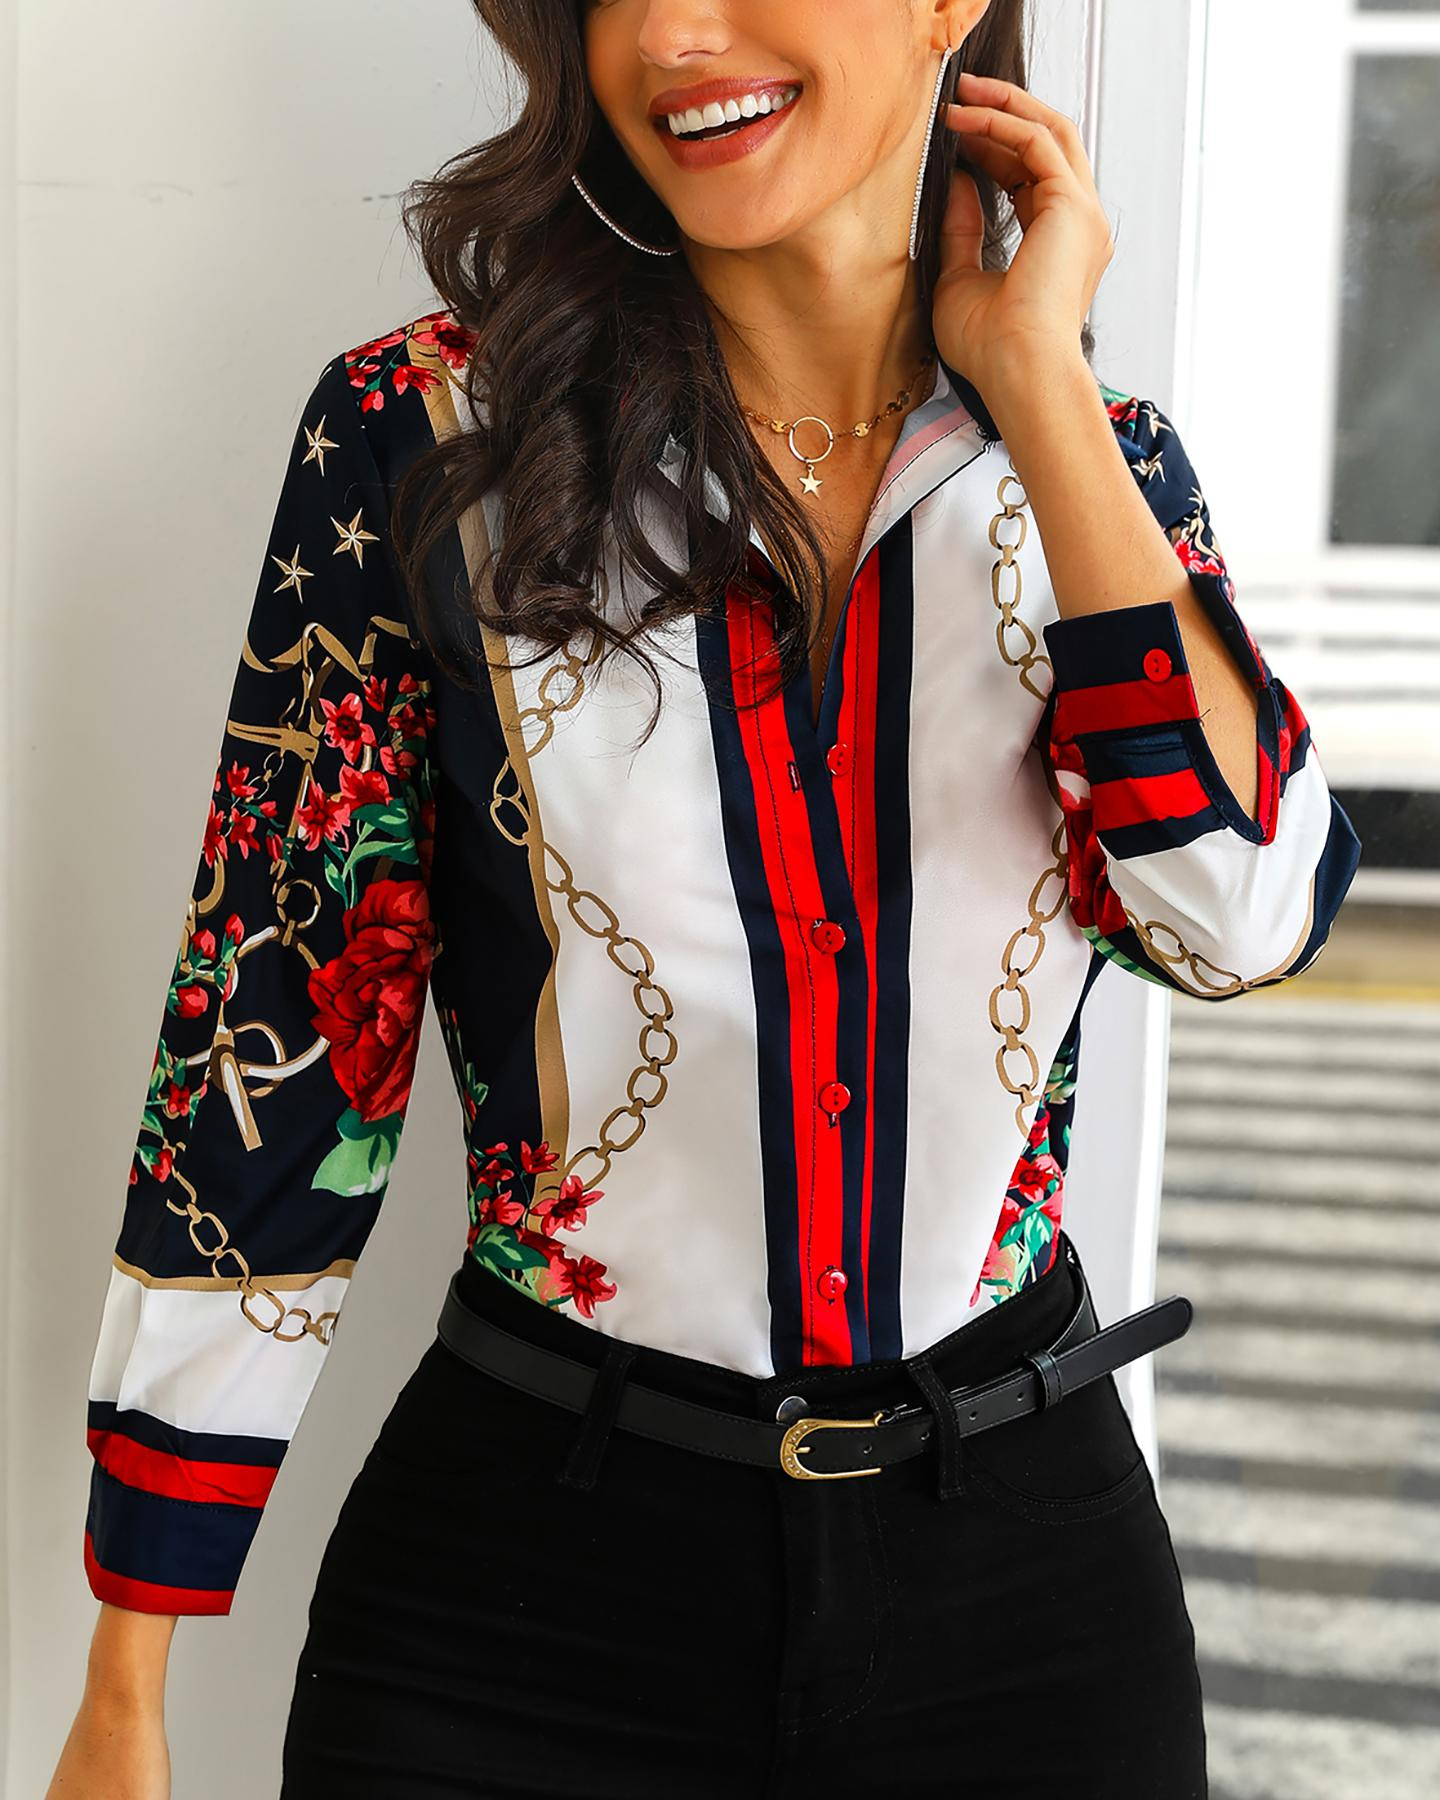 Floral & Chains Print Casual Blouse